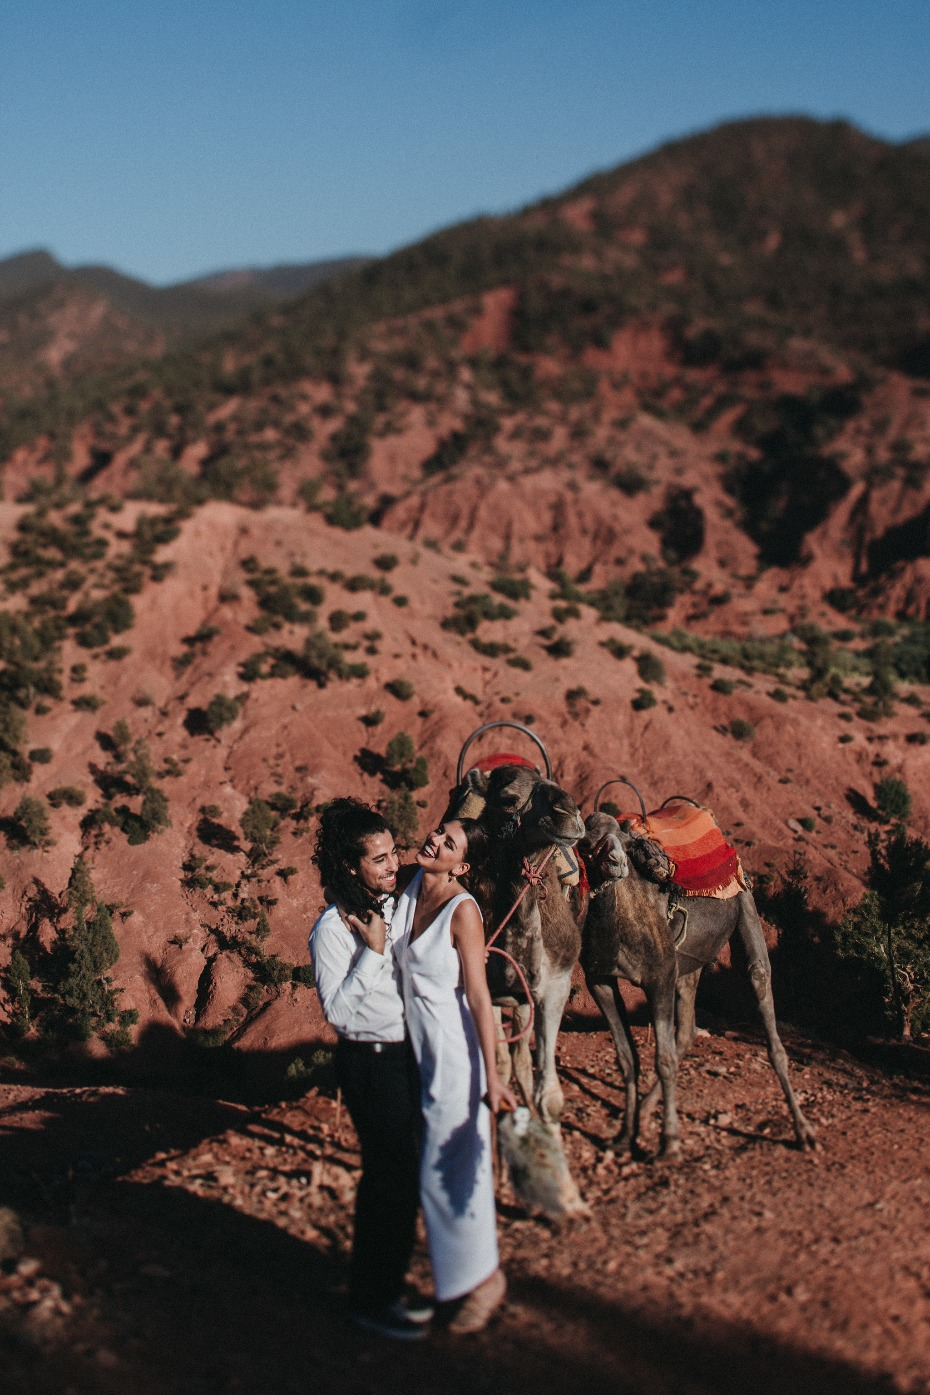 bride and groom ride a camel at their Moroccan wedding